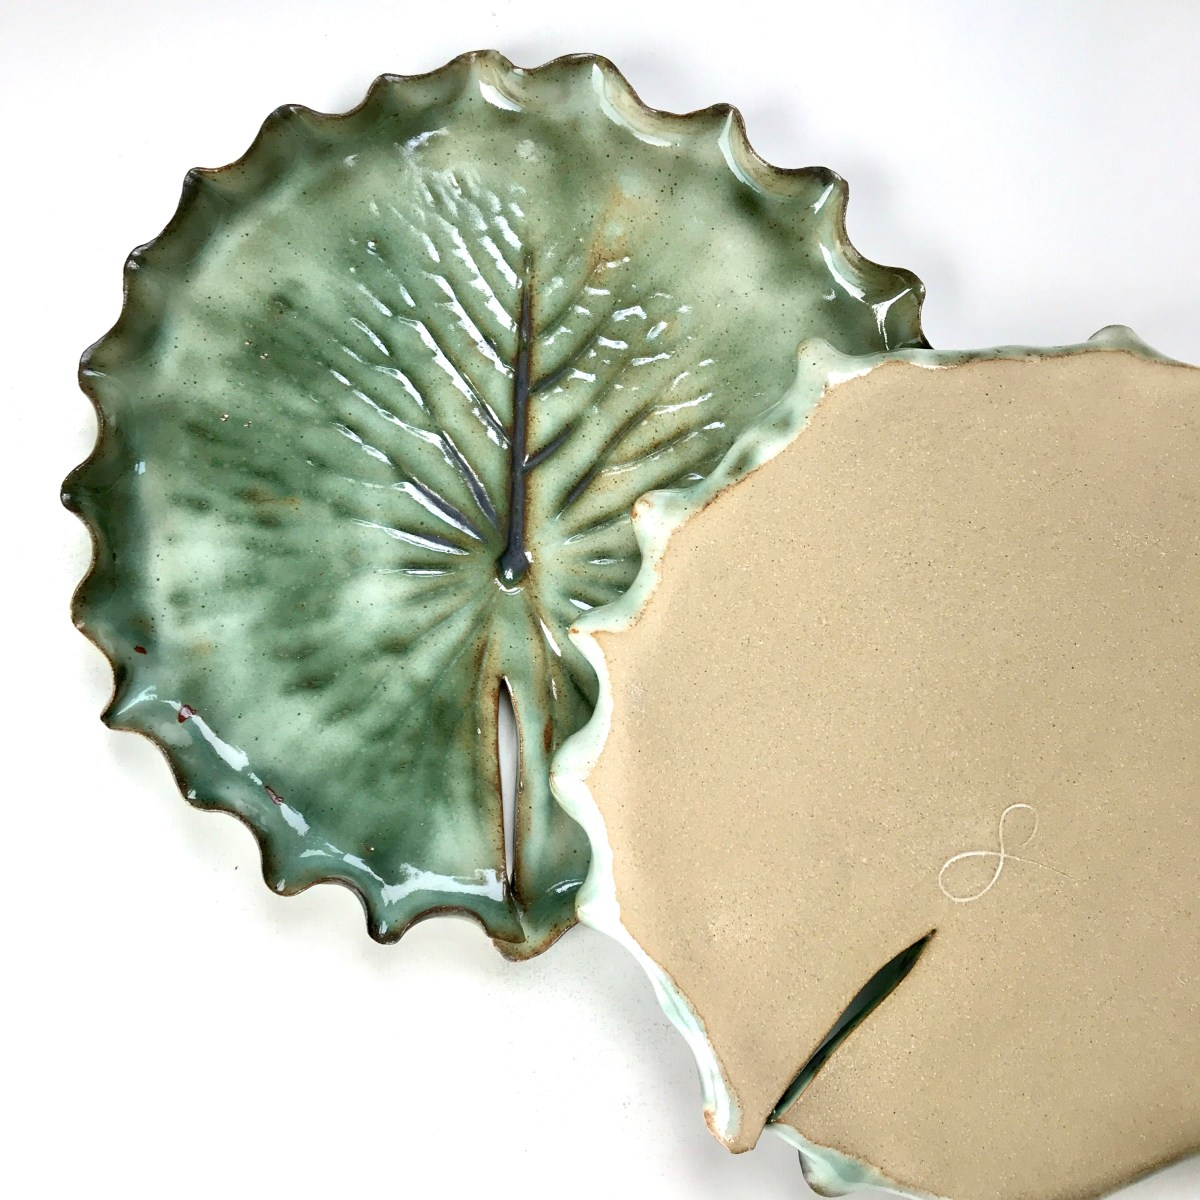 Pond Lily Leaf Dessert Dishes (Top & Base View)